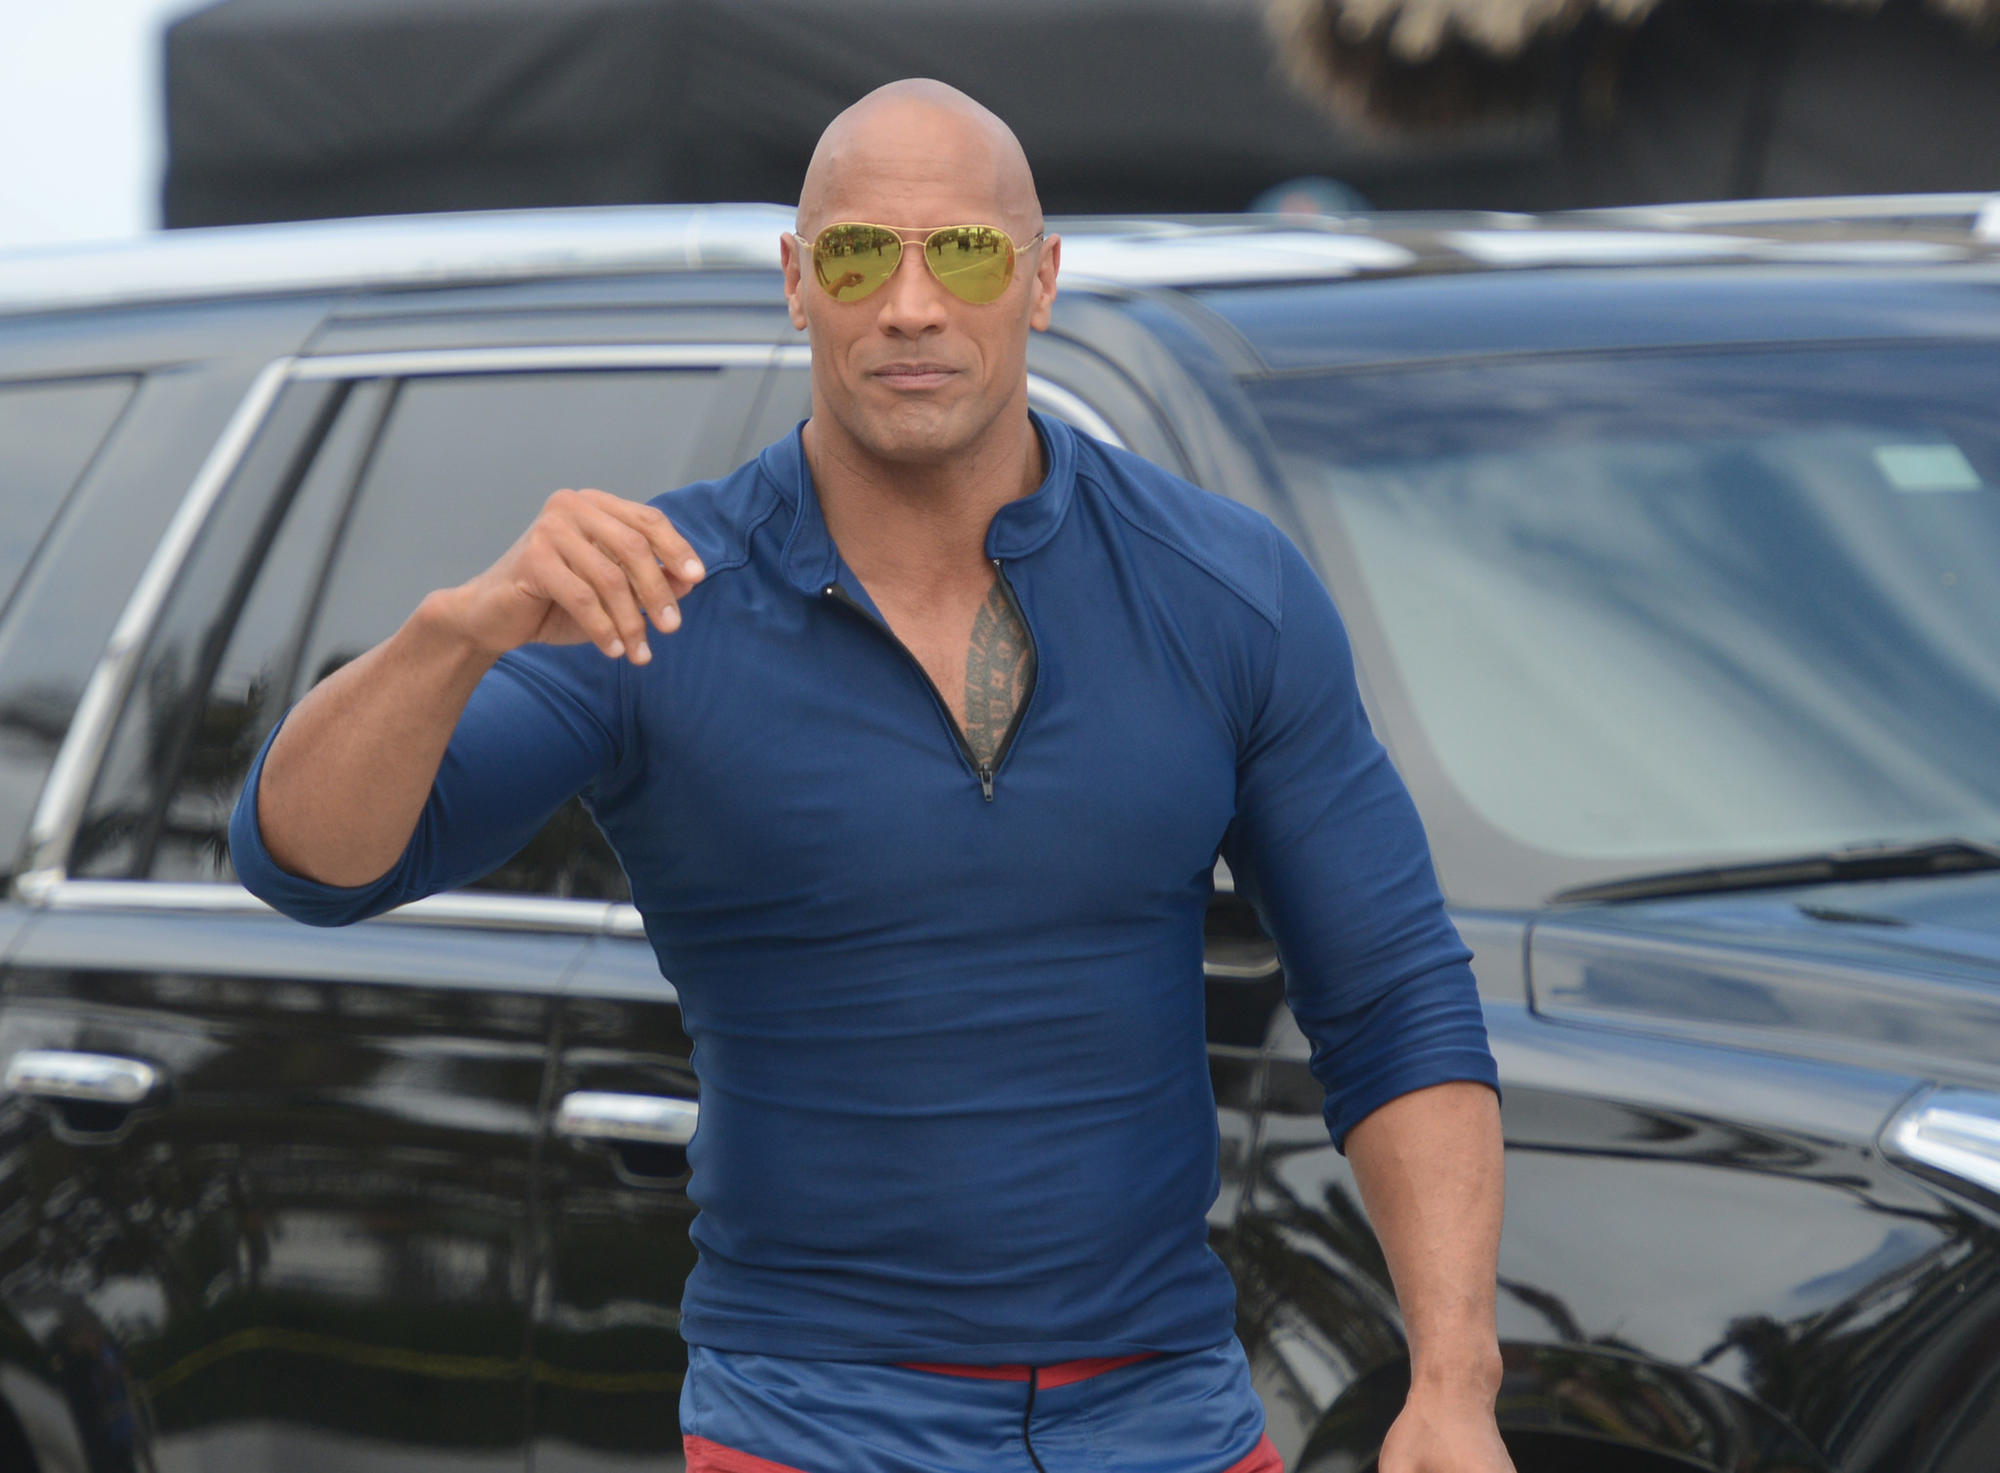 Dwayne 'The Rock' Johnson says he's seriously thinking about running for president in 2020